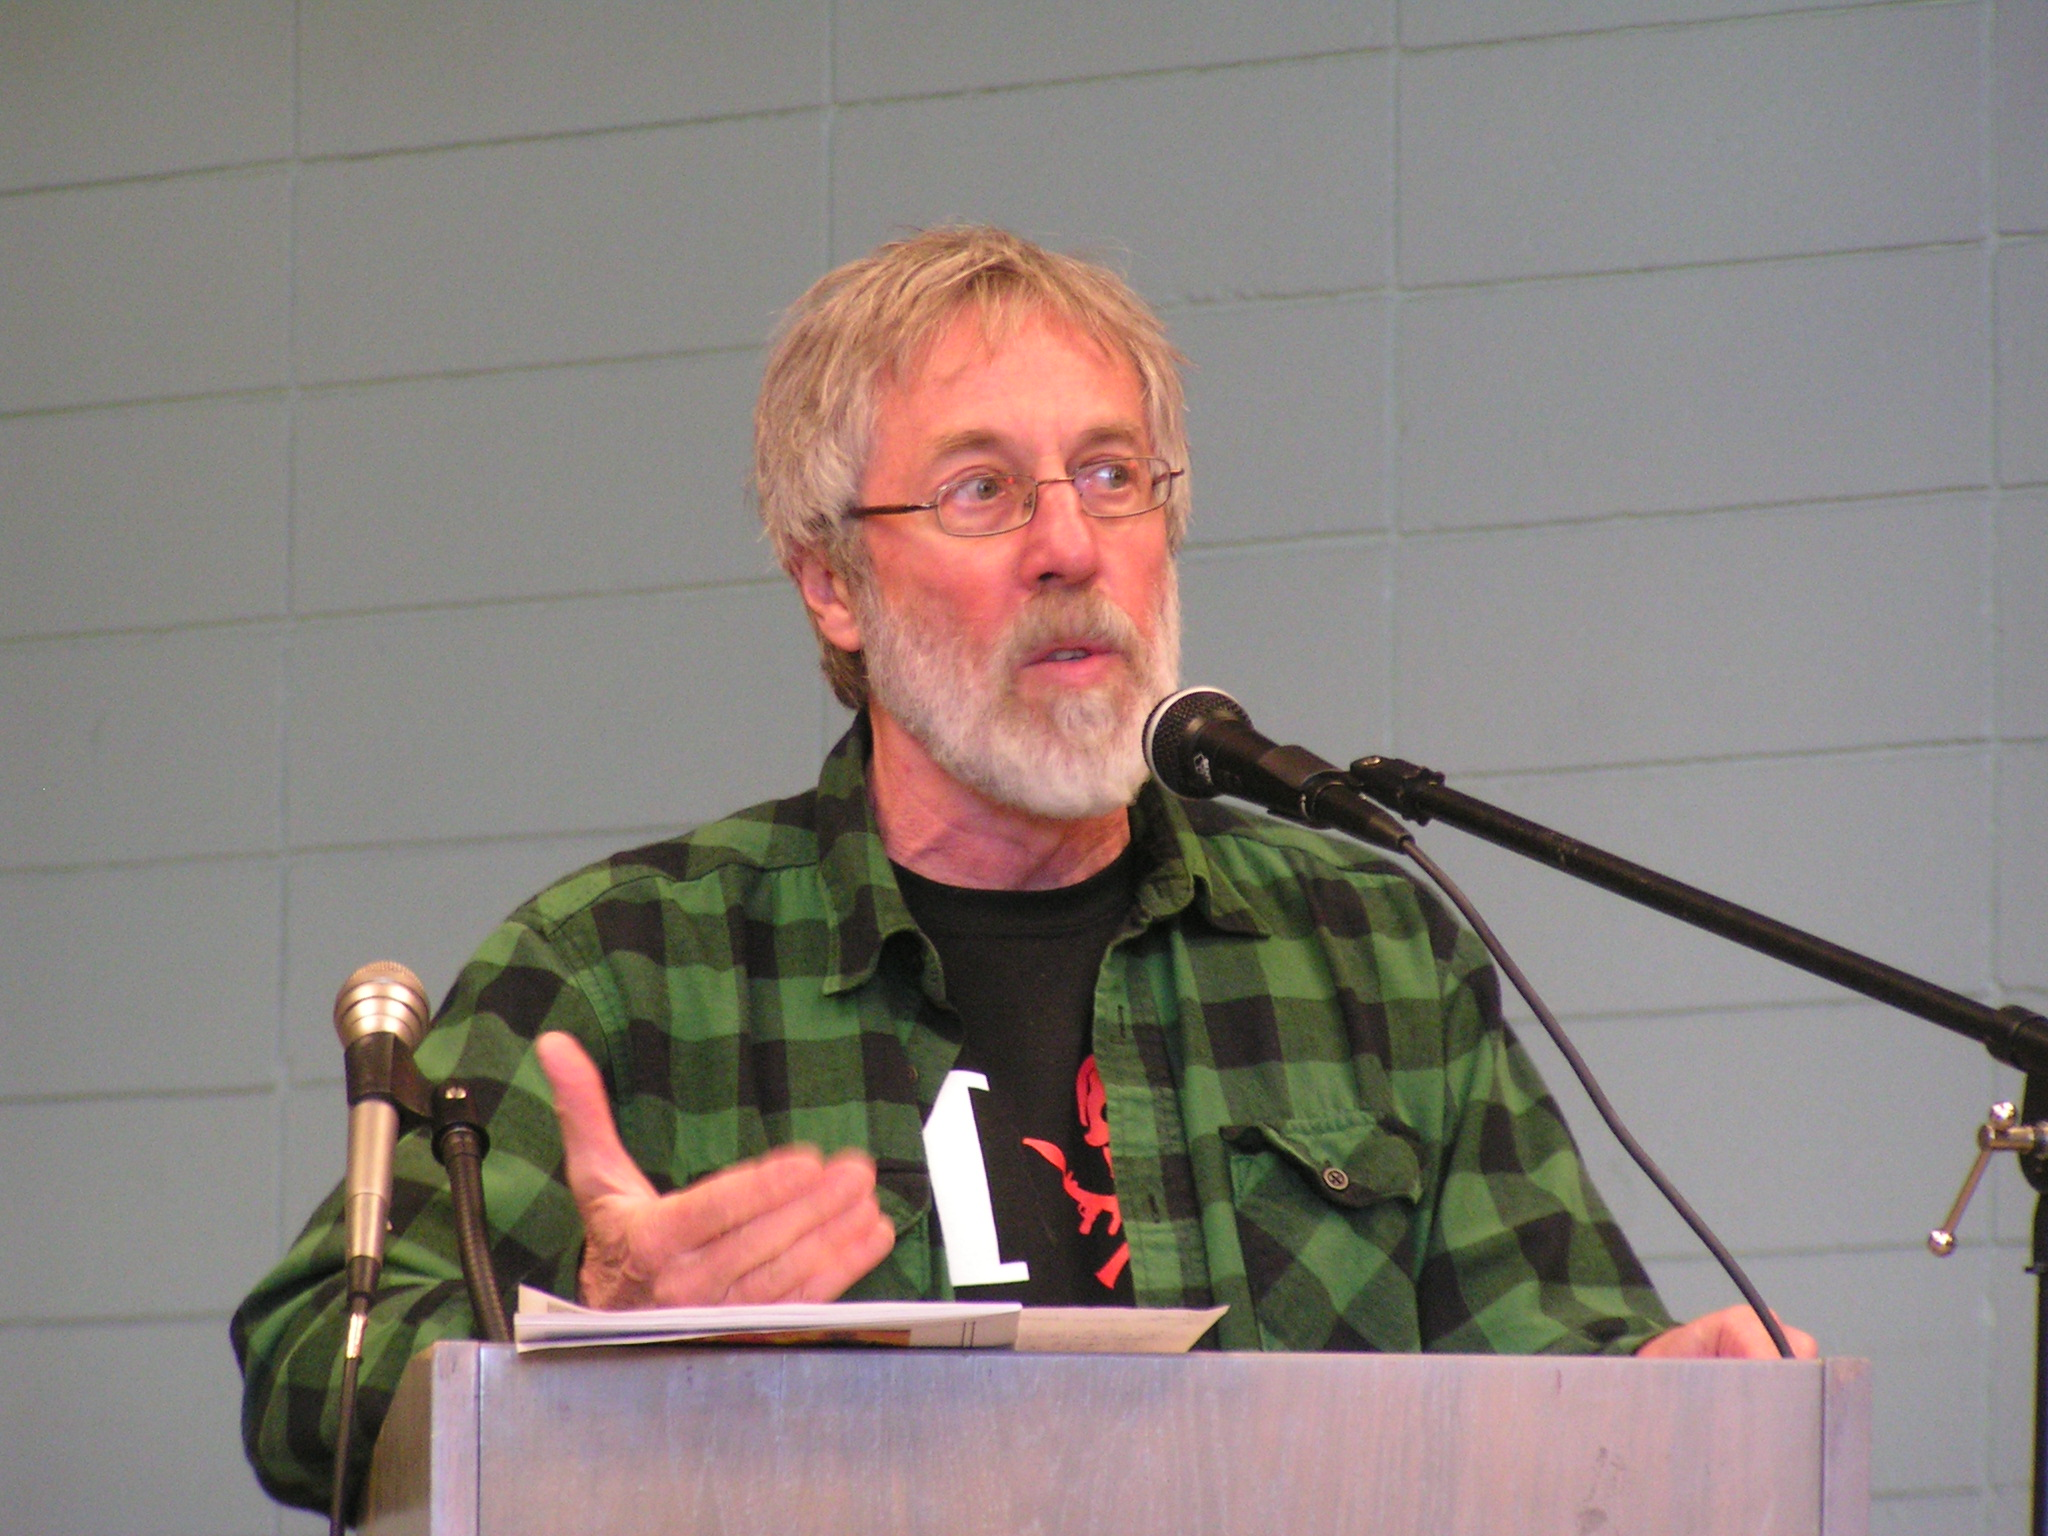 Foto de John Zerzan John Zerzan en 2010 en San Francisco Anarchist Bookfair (Fuente Wikipedia: CC BY 3.0)